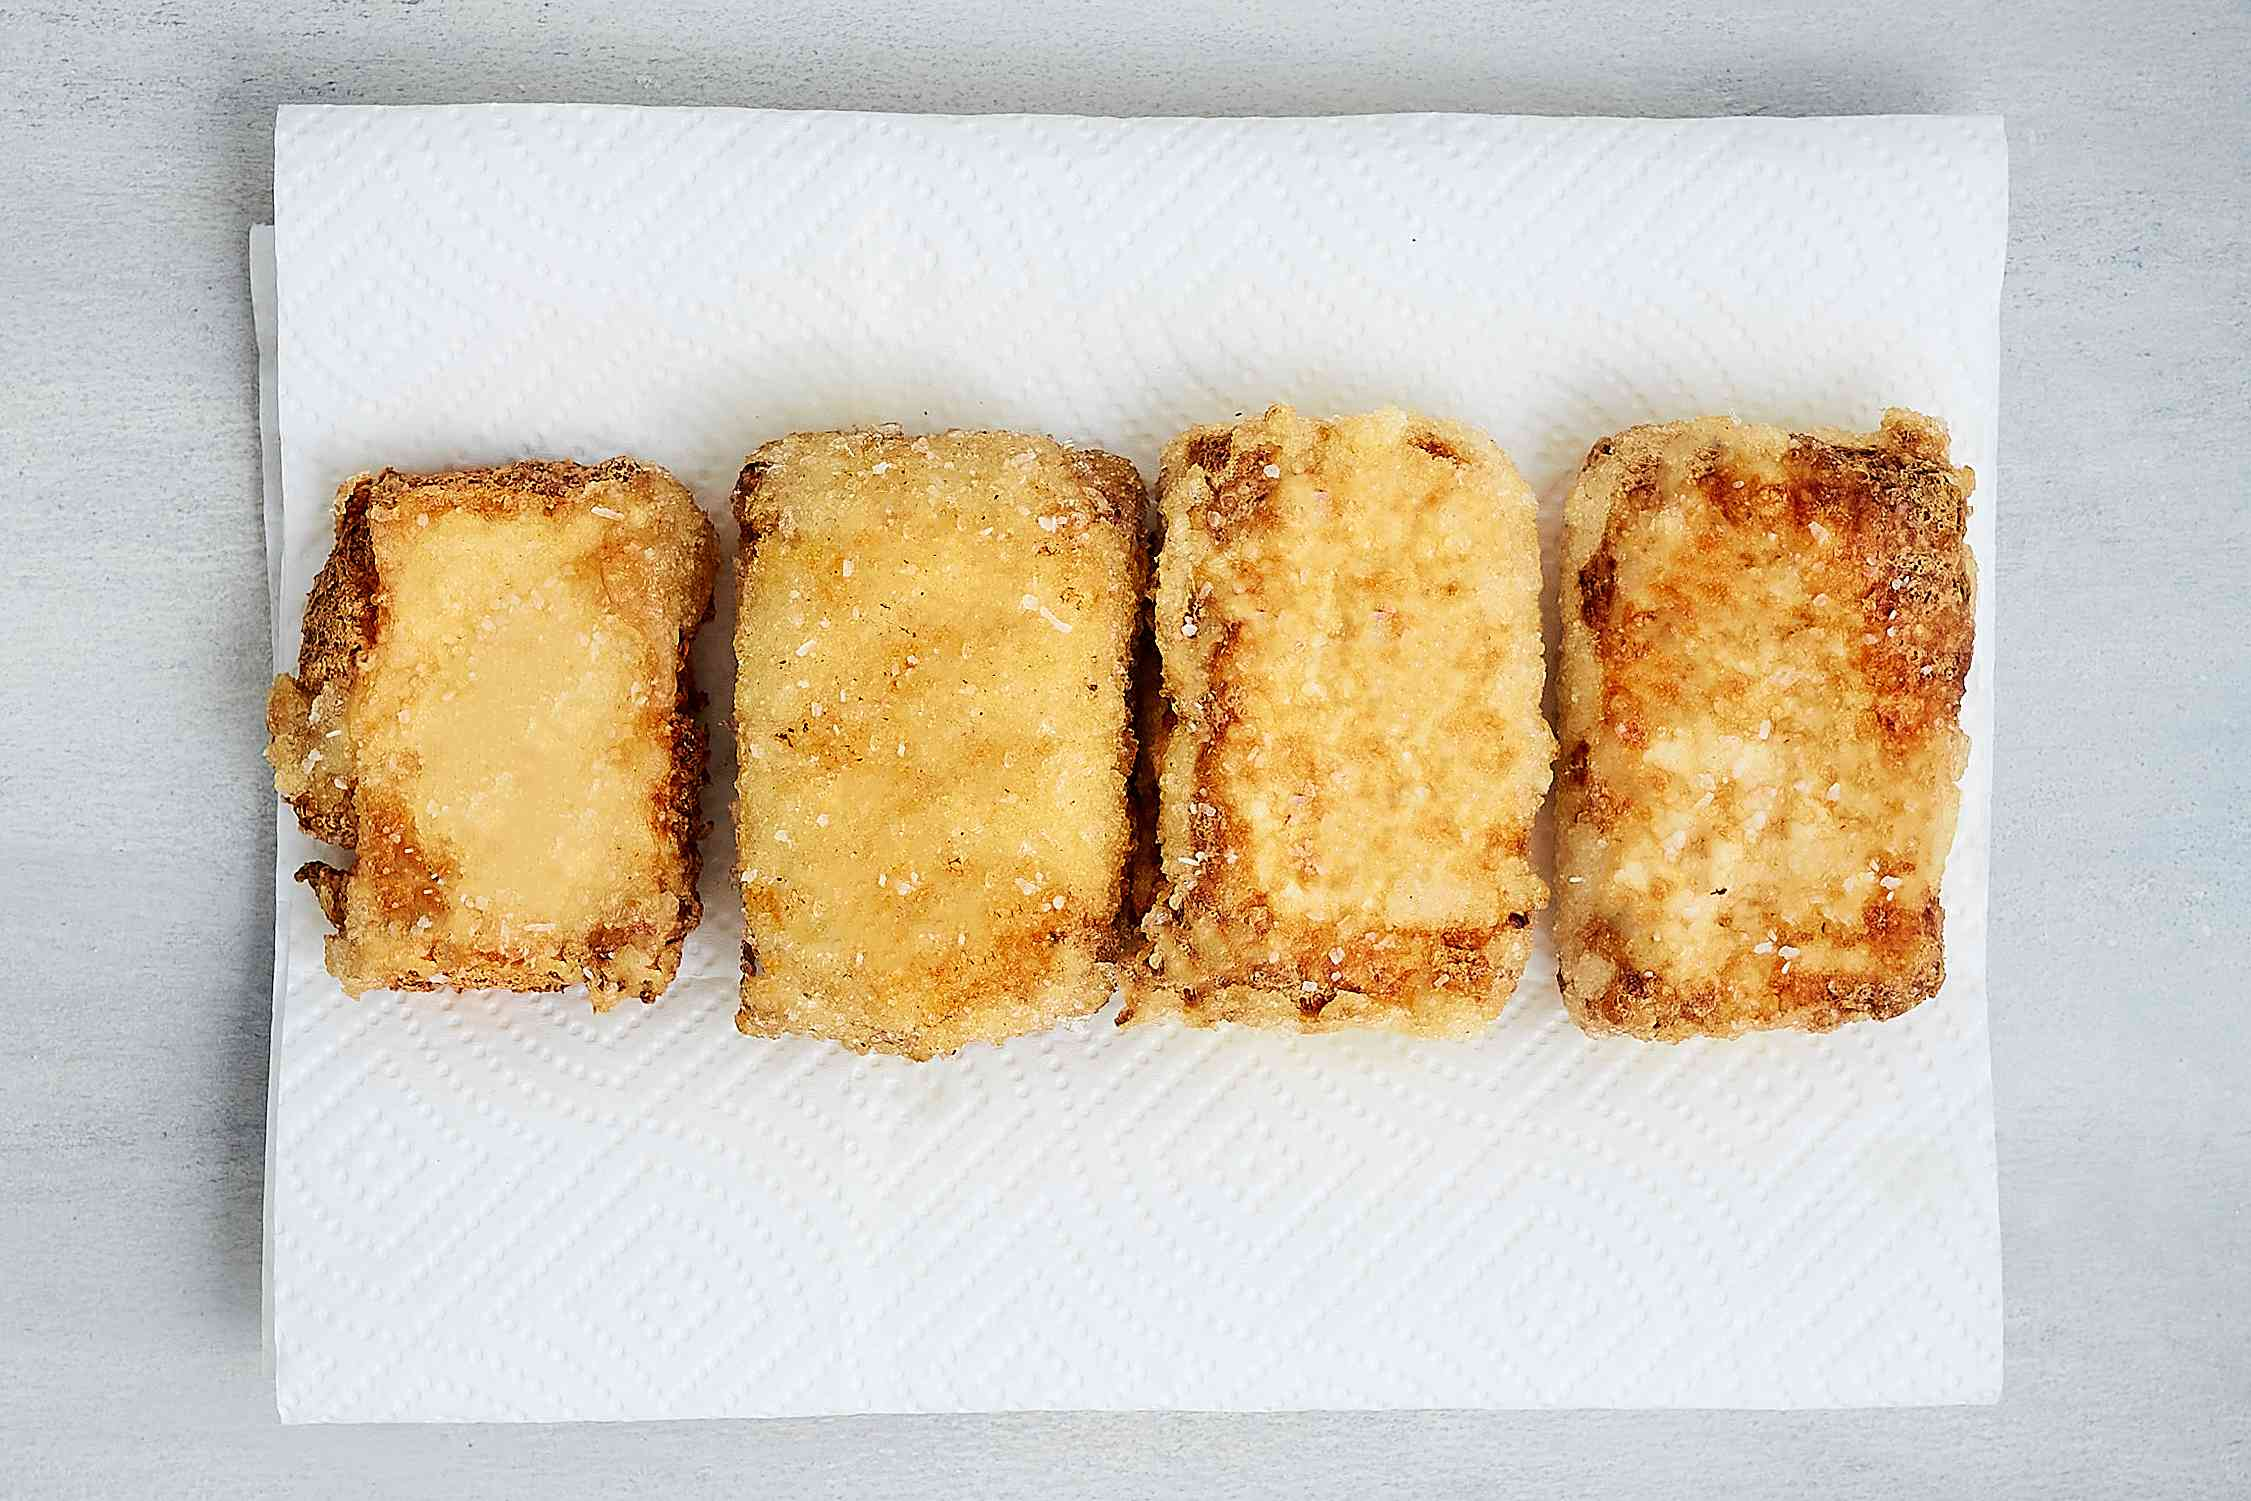 fried tofu on top of paper towels